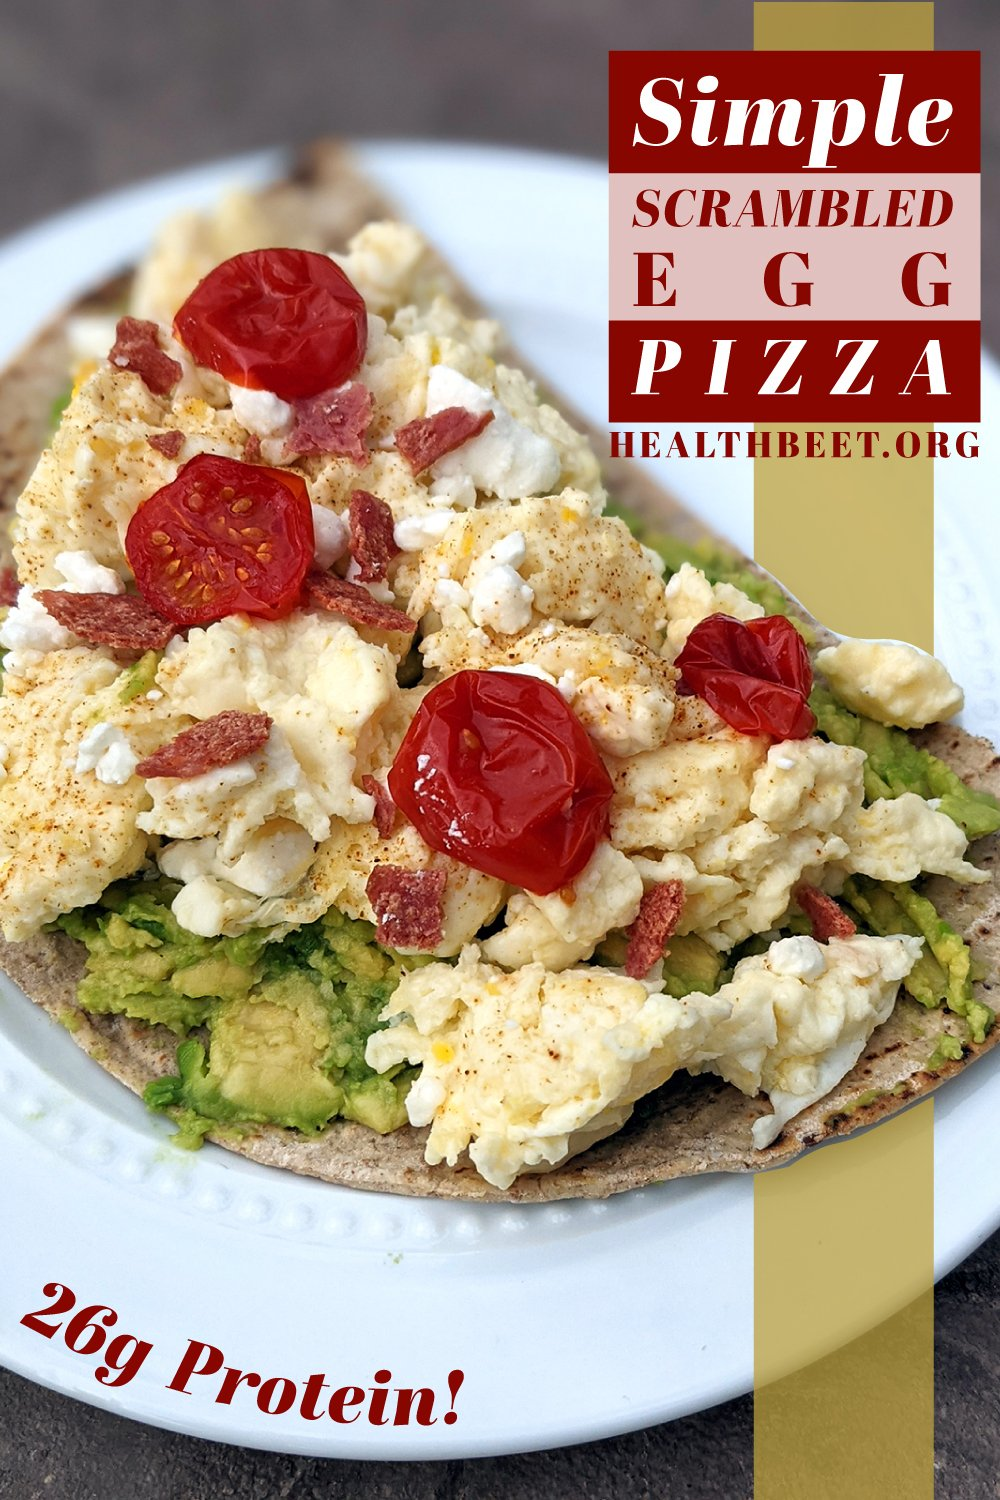 This scrambled egg pizza, on 3 different low calorie crust options, is a quick healthy breakfast idea if you want to start off with some high quality protein. Each pizza has 26 grams of protein!